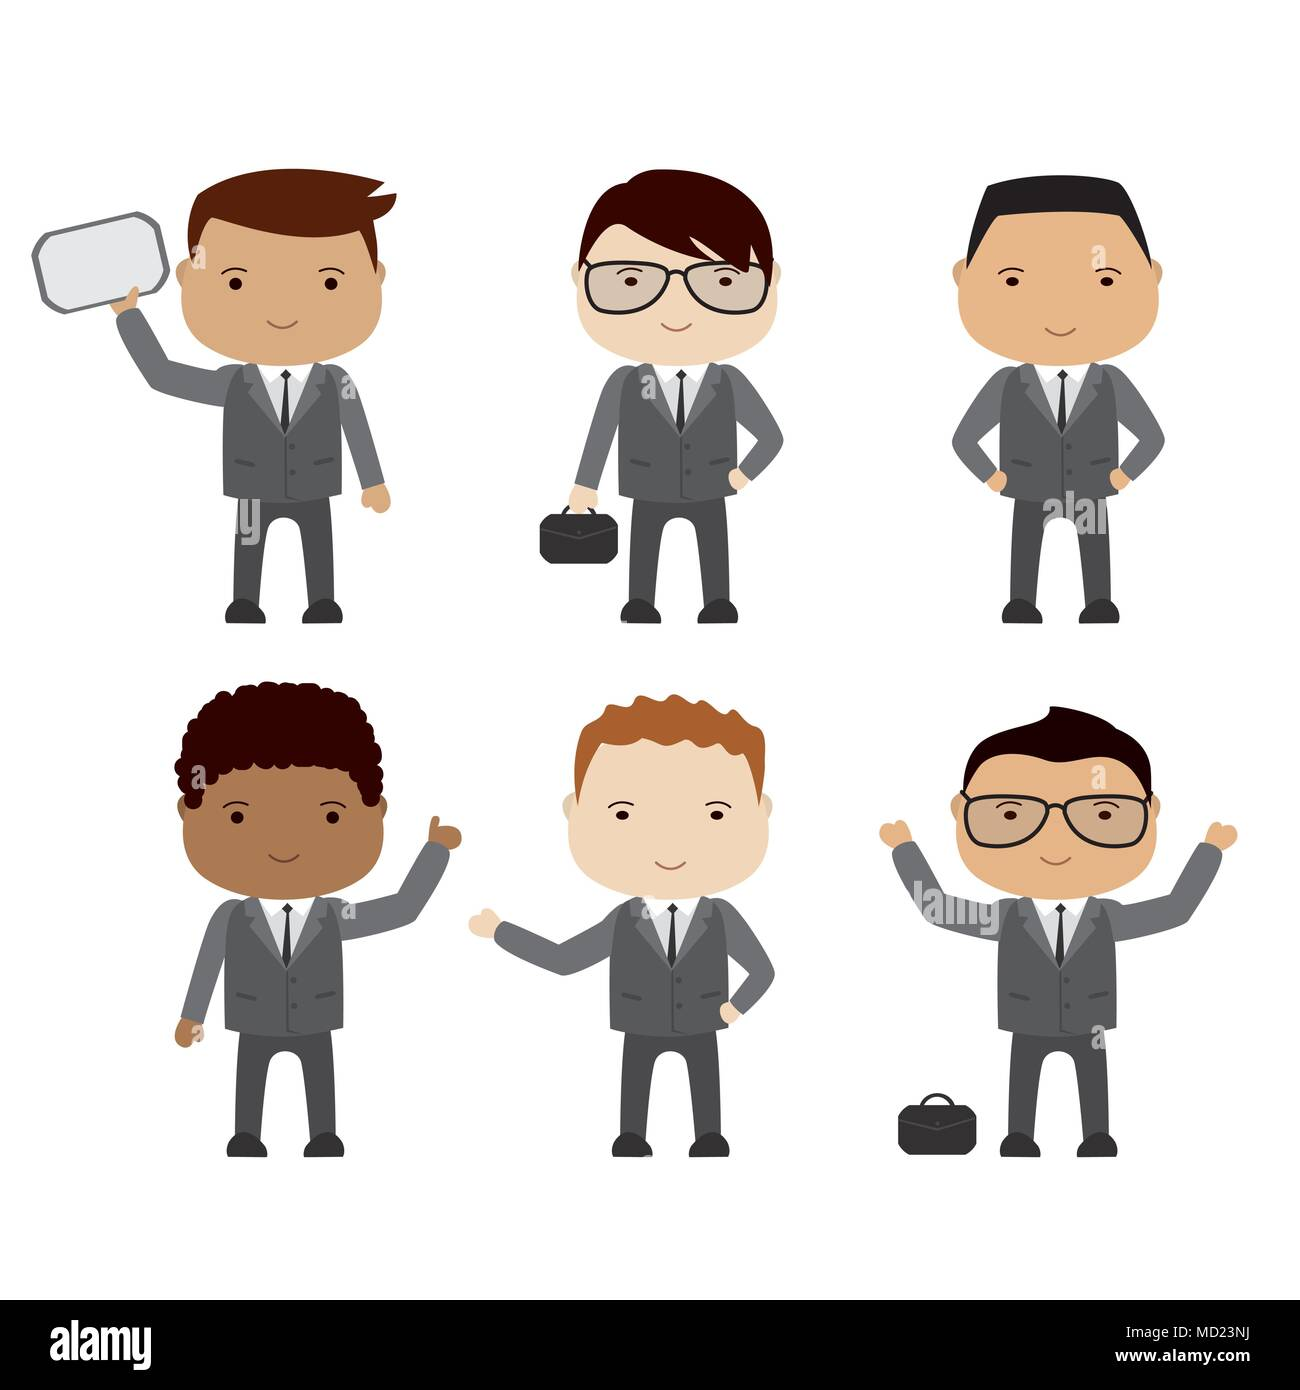 set of funny cartoon businessman or manager in various poses,different races, isolated on white,stock vector illustration - Stock Image